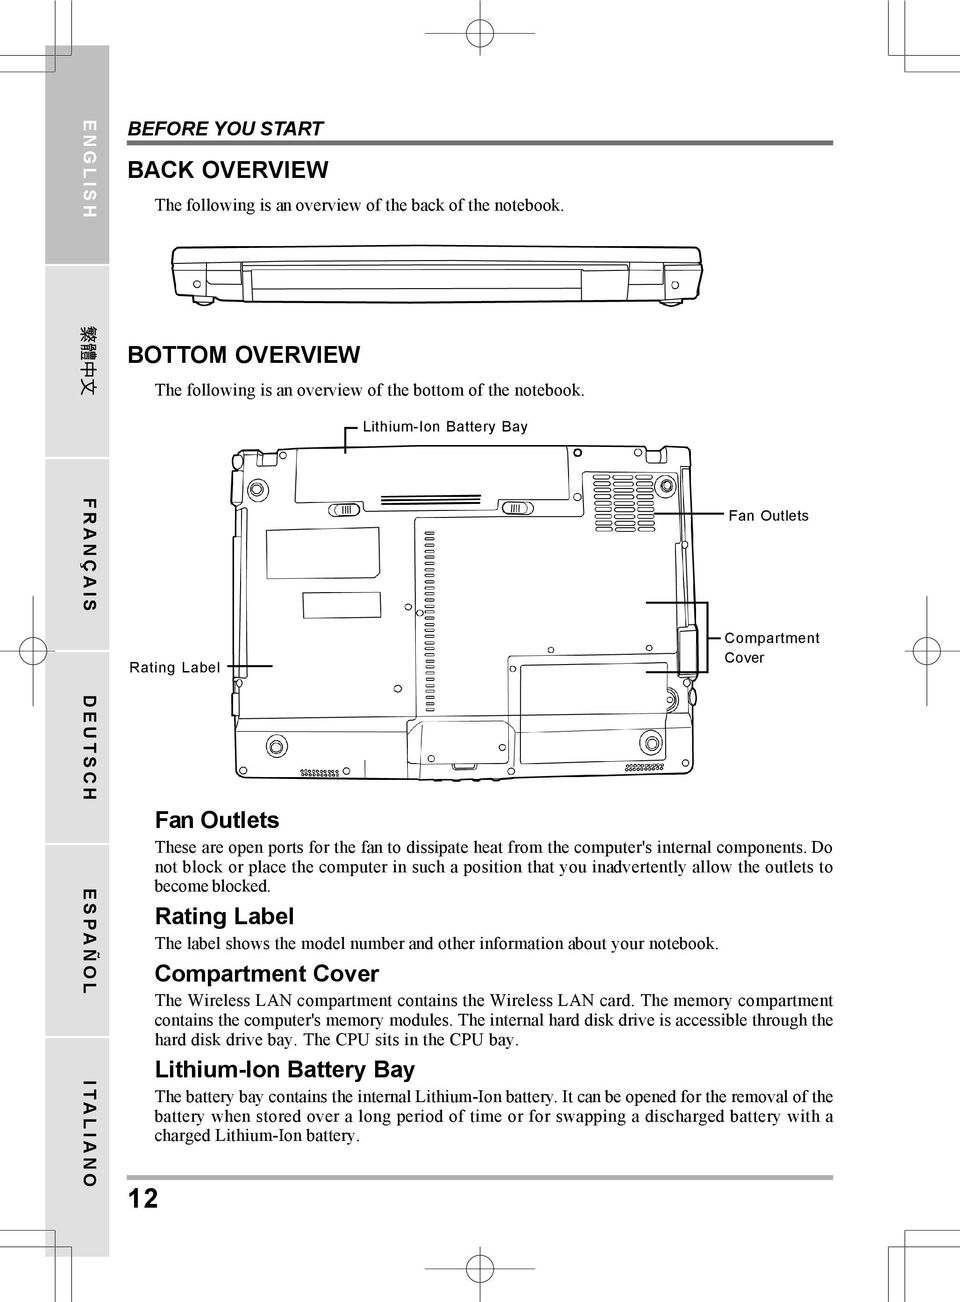 Tw3 Series Notebook Pc User S Manual English Pdf As Well Hp Laptop Charger Schematic Diagram On Dell Battery Lithium Ion Bay Fan Outlets Compartment Cover These Are Open Ports For